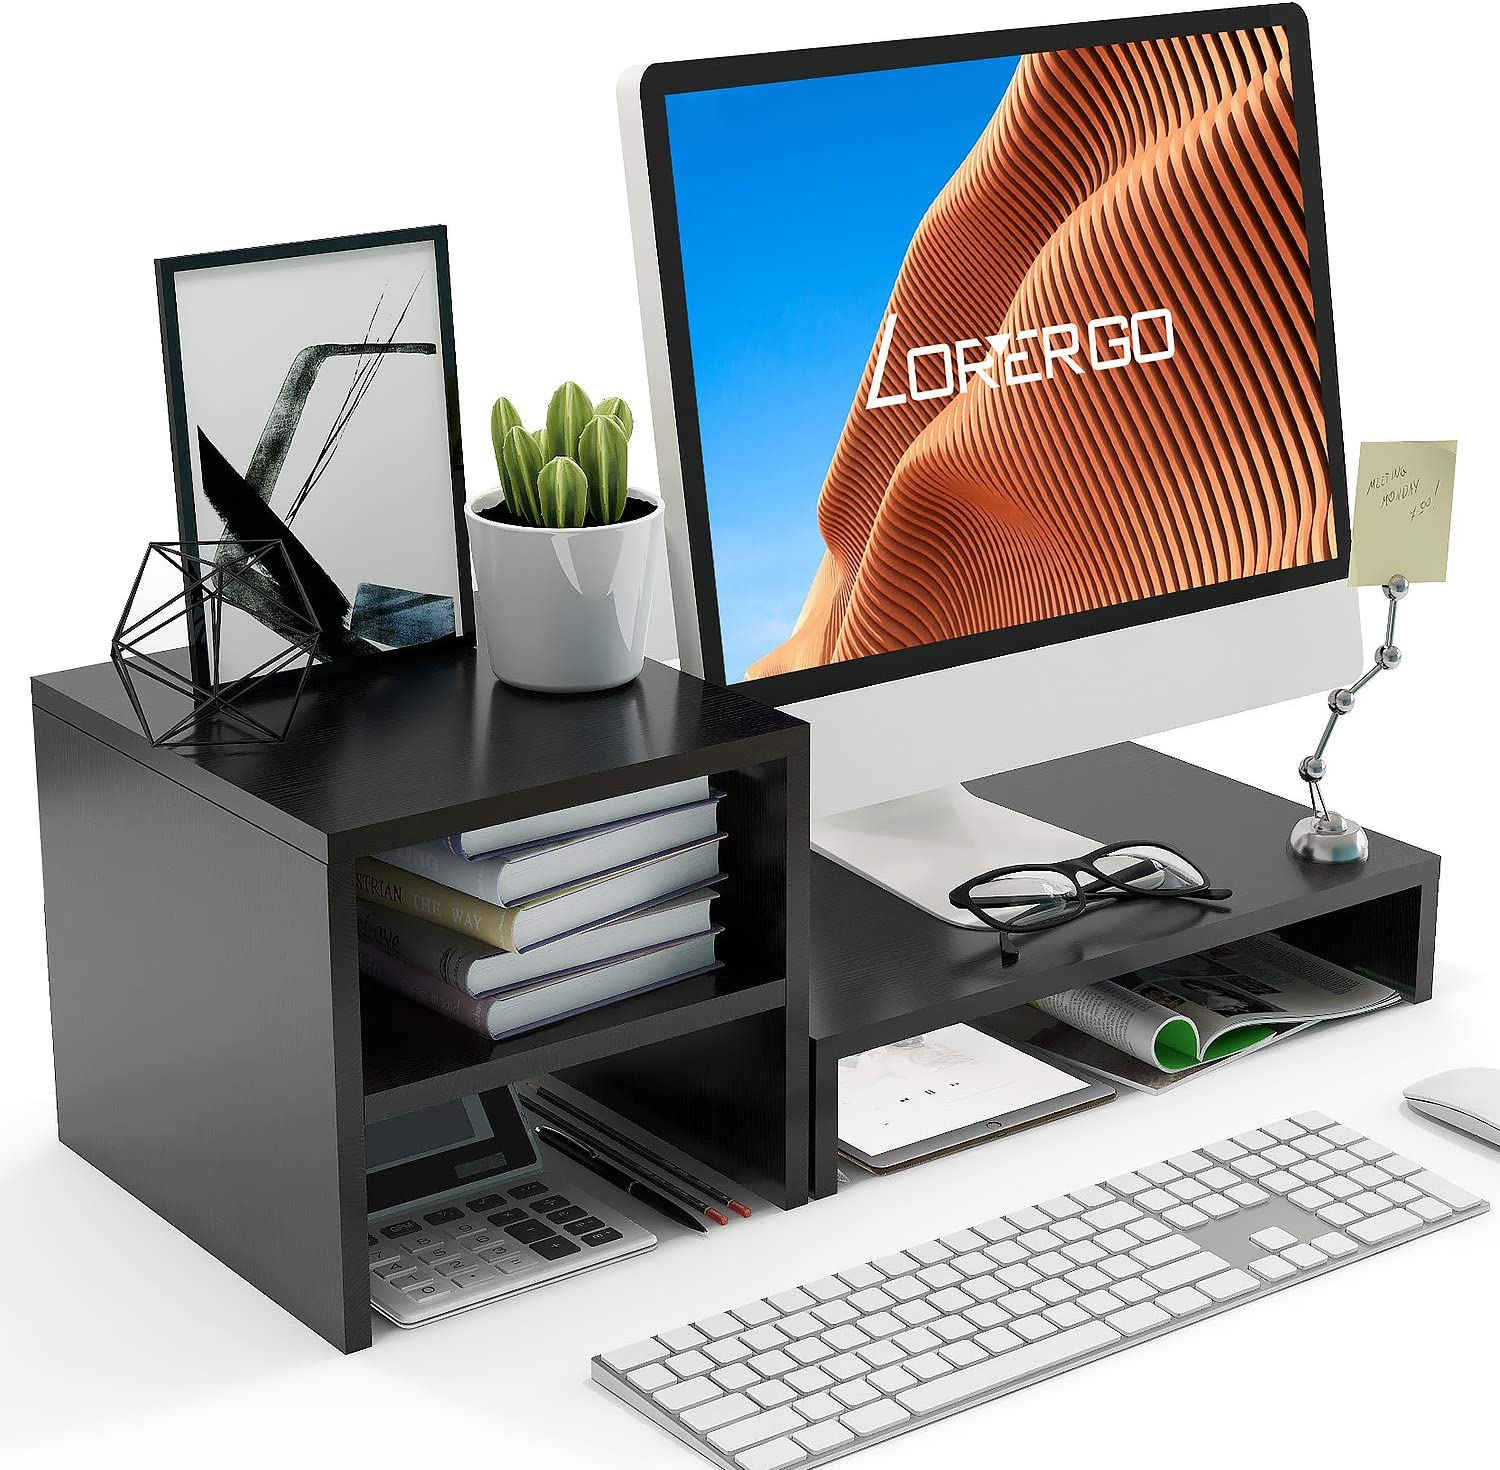 LORYERGO Monitor Stand Riser - Laptop Stand with 2 Tier Storage Shelf, Desktop Storage Organizer for Computer, Laptop, Printer, Perfect as Screen Stand, Desktop Bookshelf for Home & Office